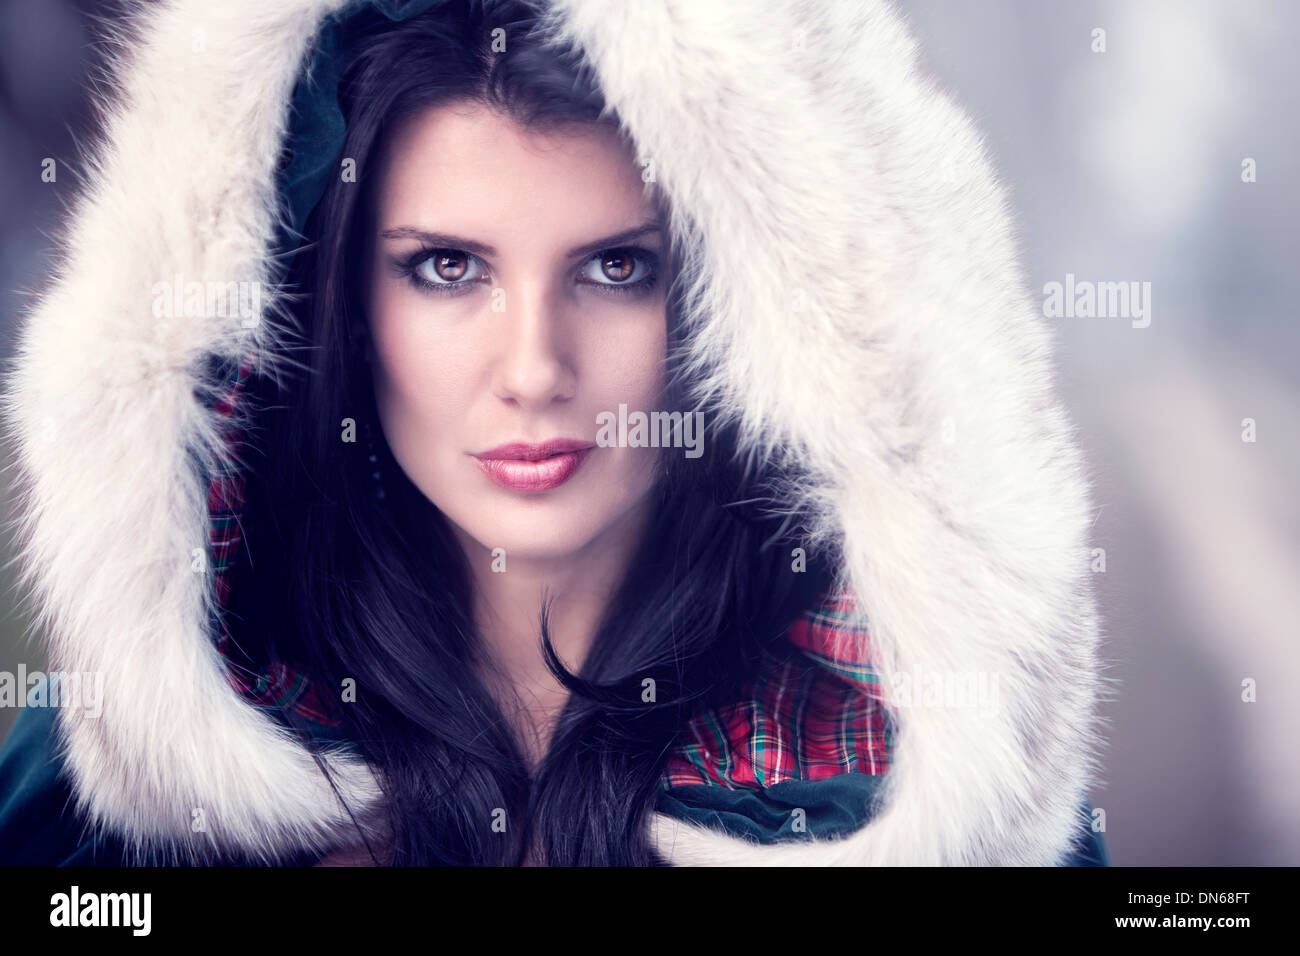 Beauty portrait of woman wearing a fur covered hood on a cold winter day. - Stock Image